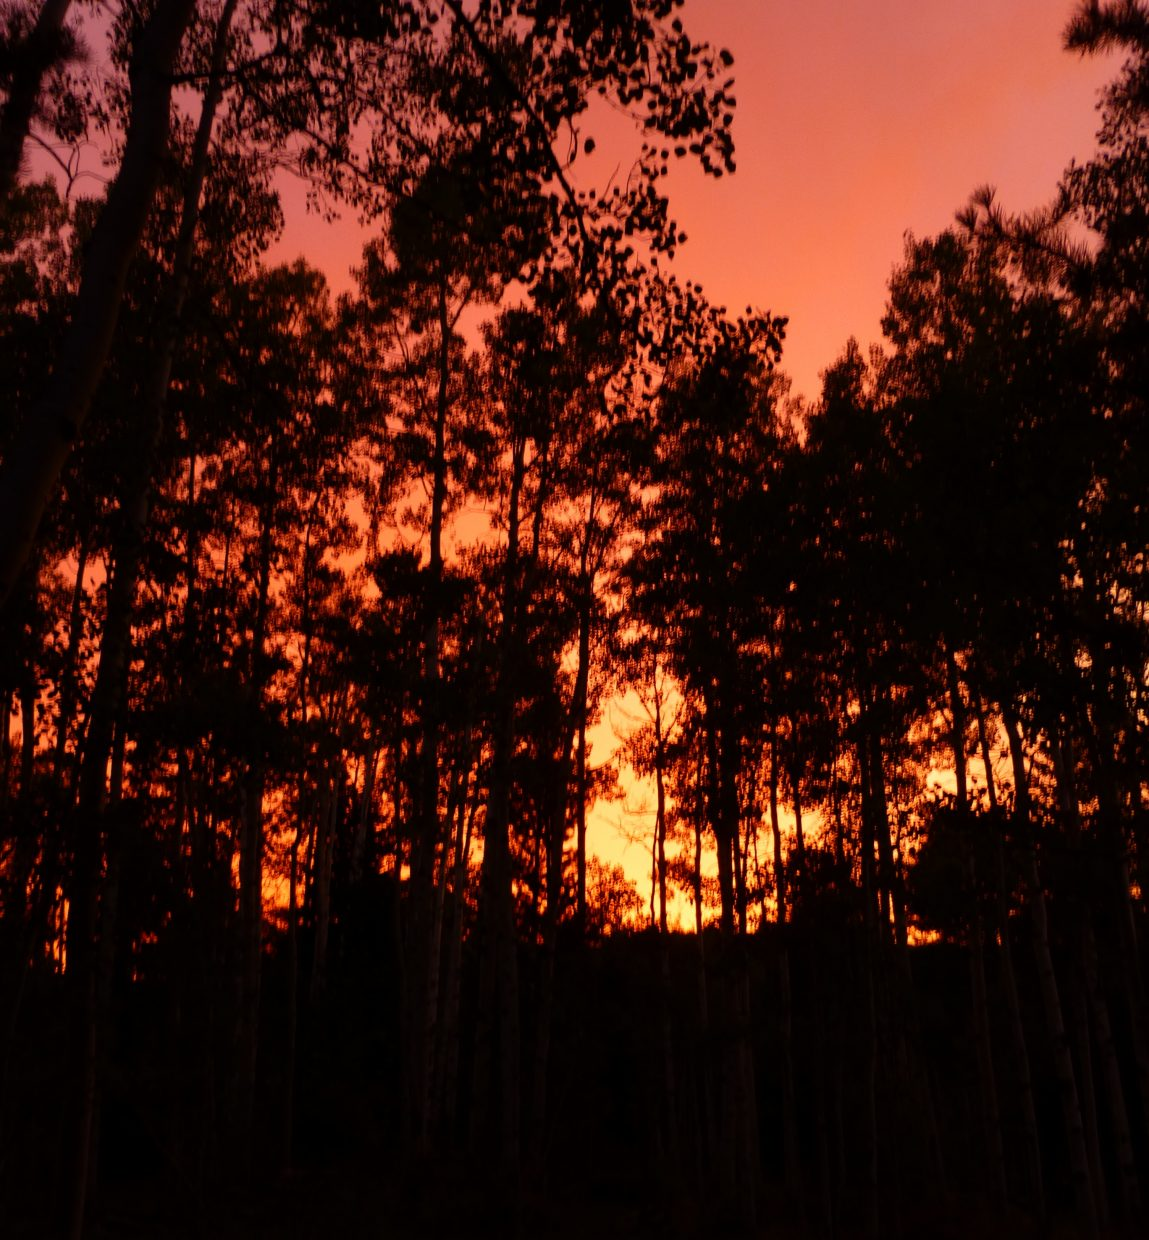 Sunset in the trees. Submitted by: Gail Hanley